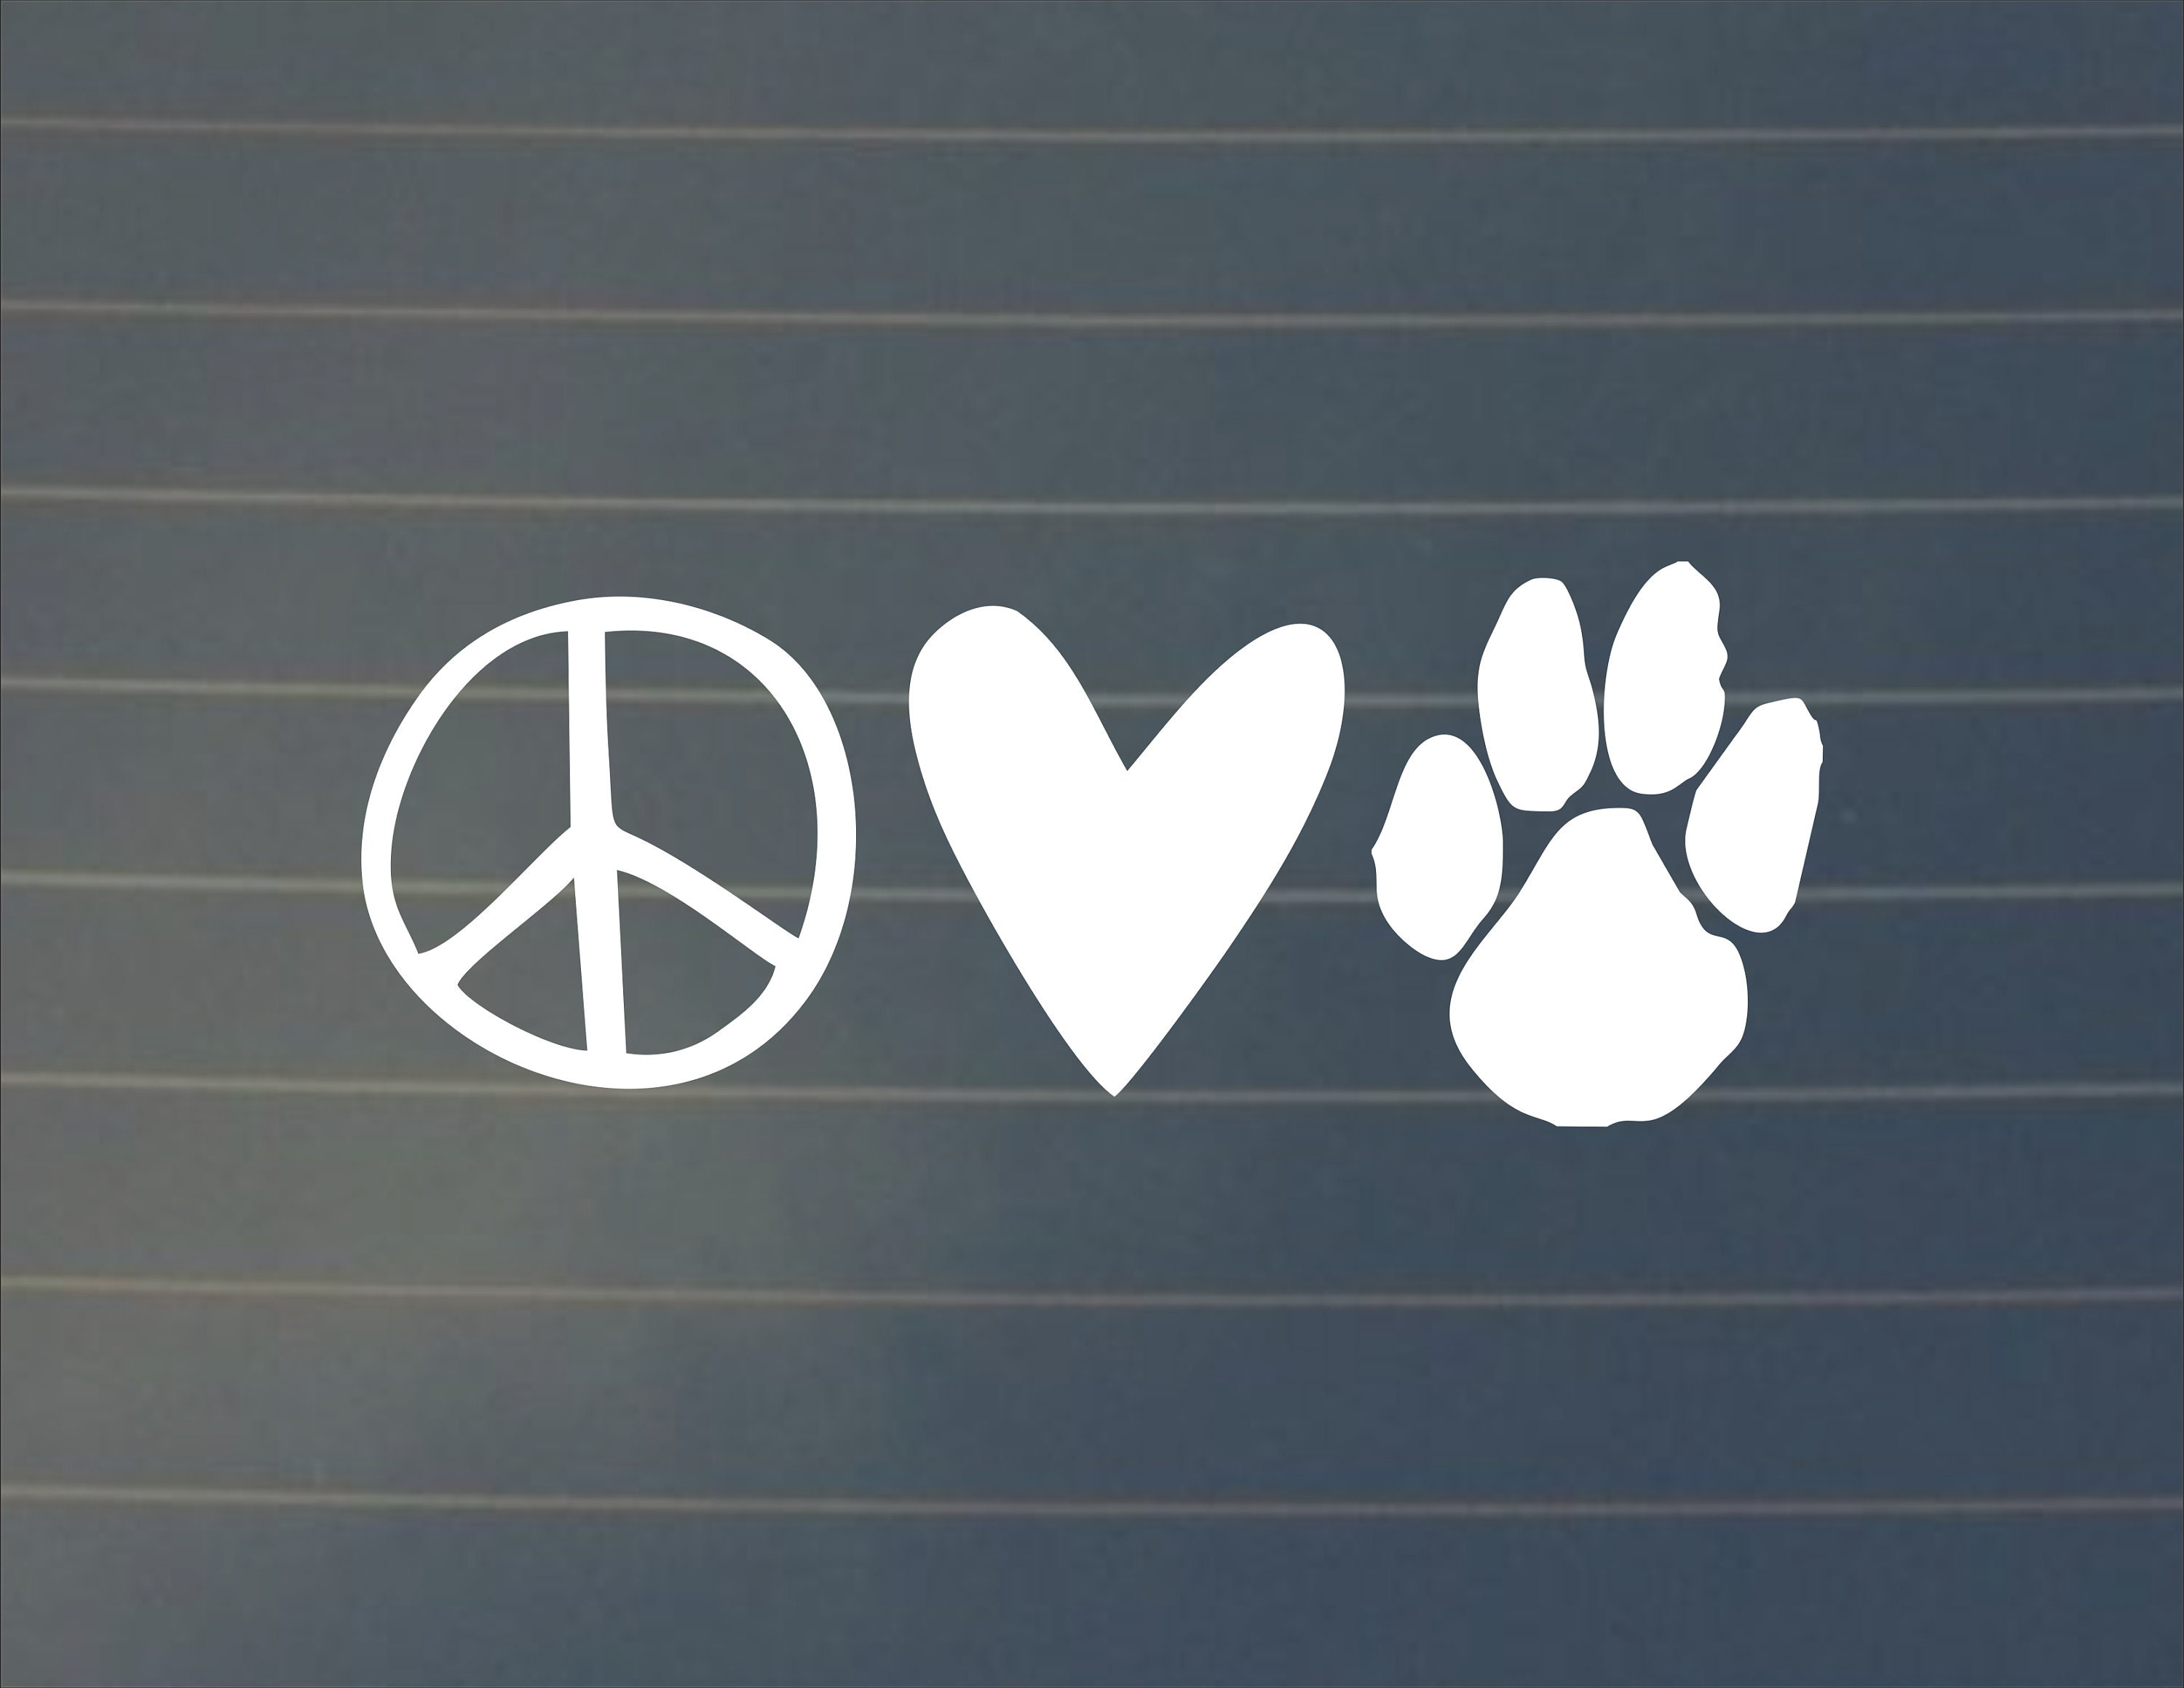 Decal peace love paws decal car decal paw print decal laptop stickers laptop decal dog owner decal dog car decals car decals decal